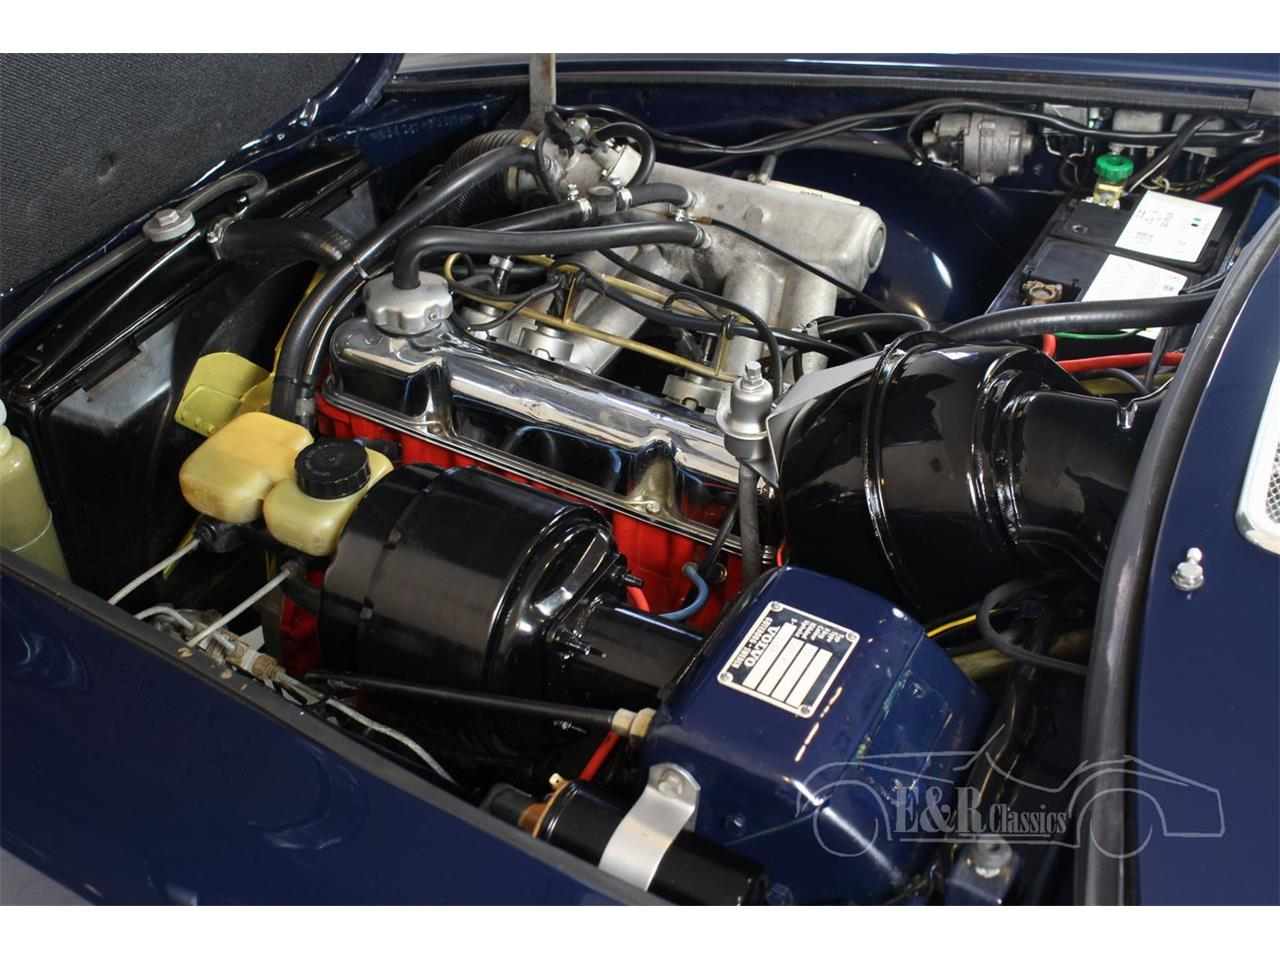 Large Picture of 1971 Volvo P1800E - $39,400.00 Offered by E & R Classics - Q95J